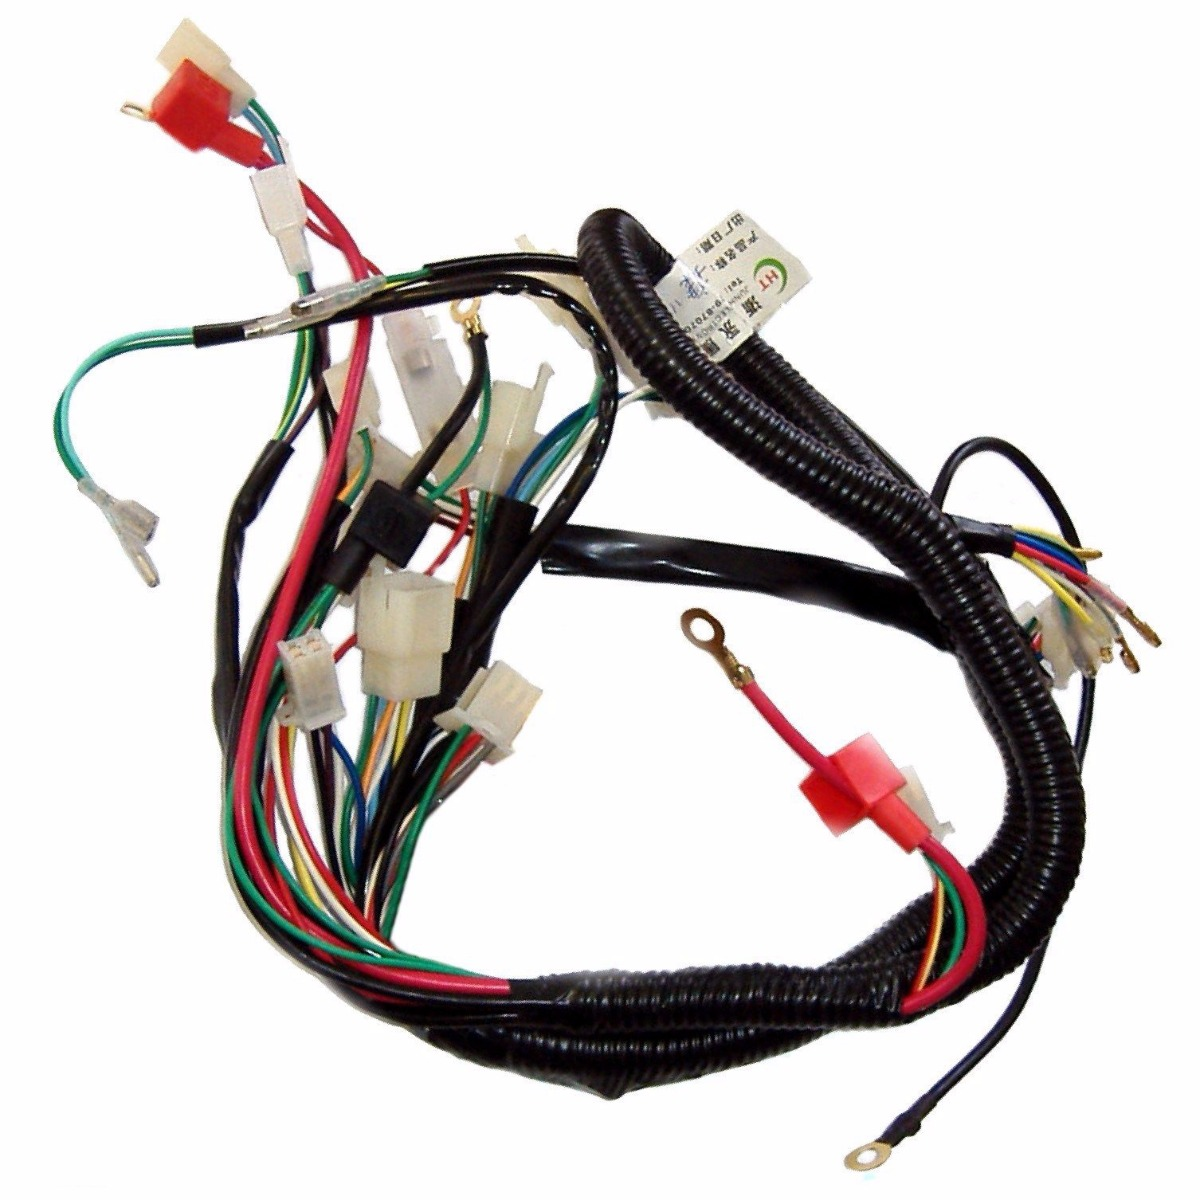 motorcycle electric remote wiring harness loom solenoid coil 50cc motorcycle electric remote wiring harness loom solenoid coil 50cc atv quad bike